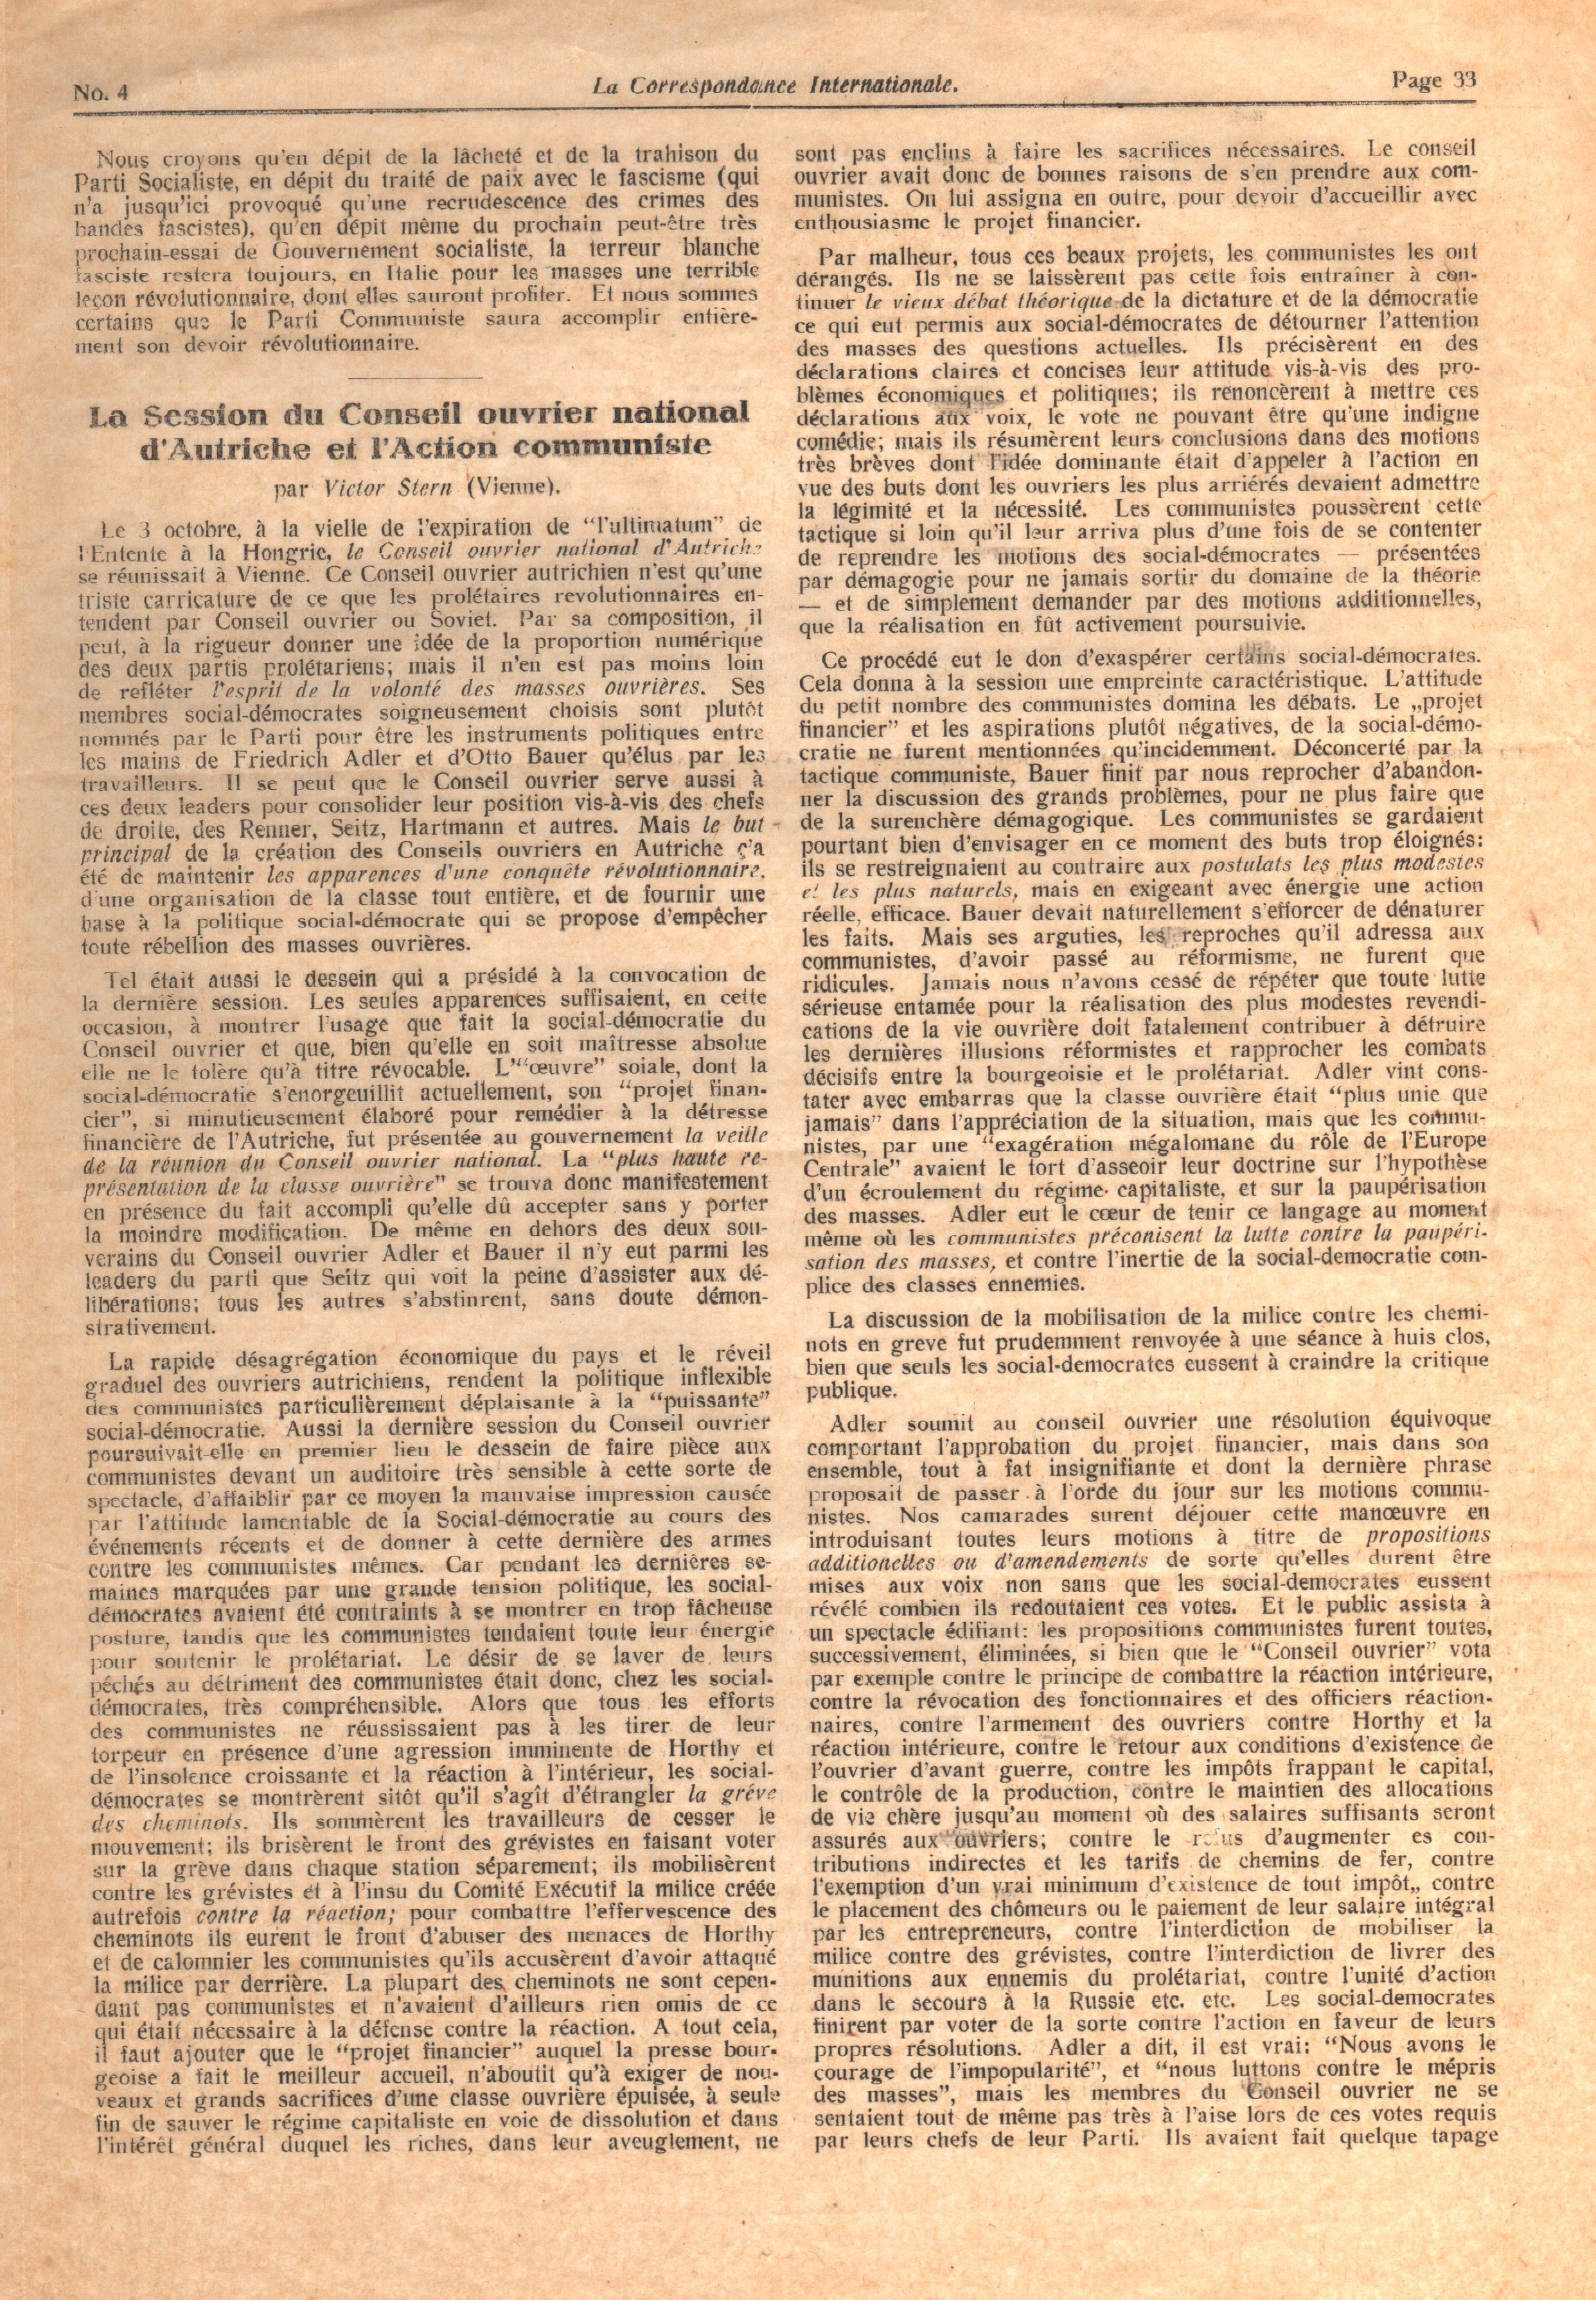 Correspondance Internationale n. 4 - pag. 5